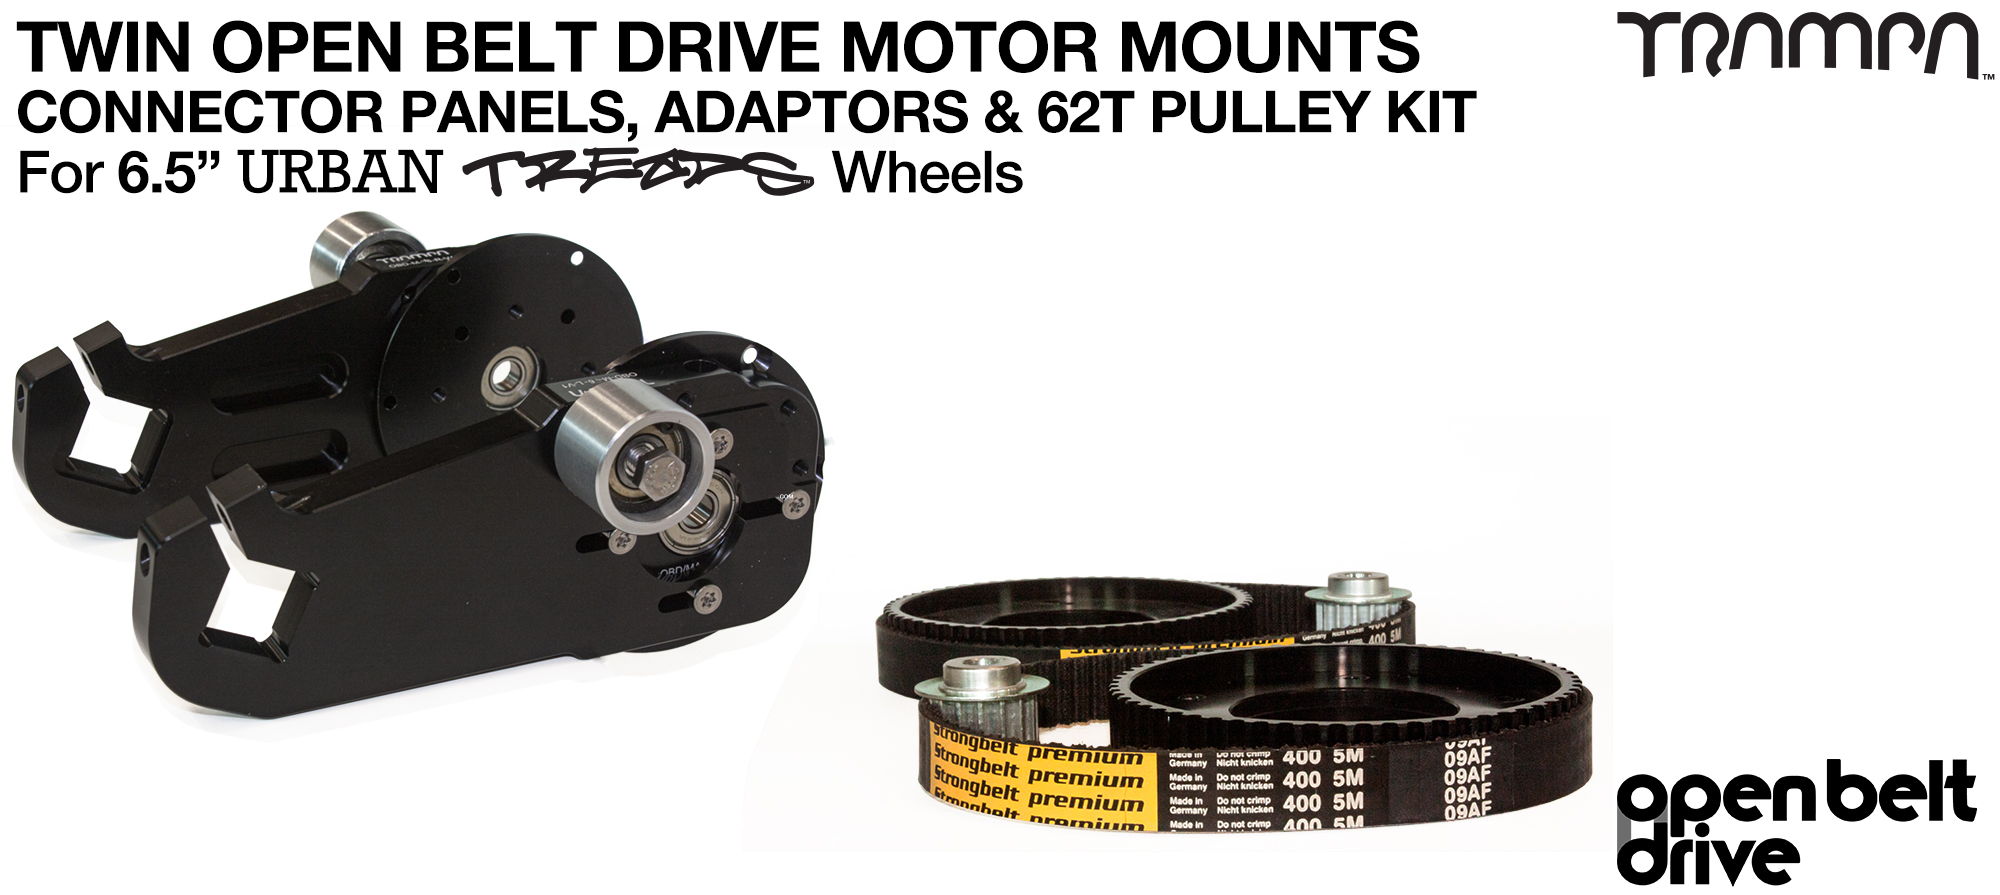 66T OBD Motor Mount & 62 tooth Pulley - TWIN